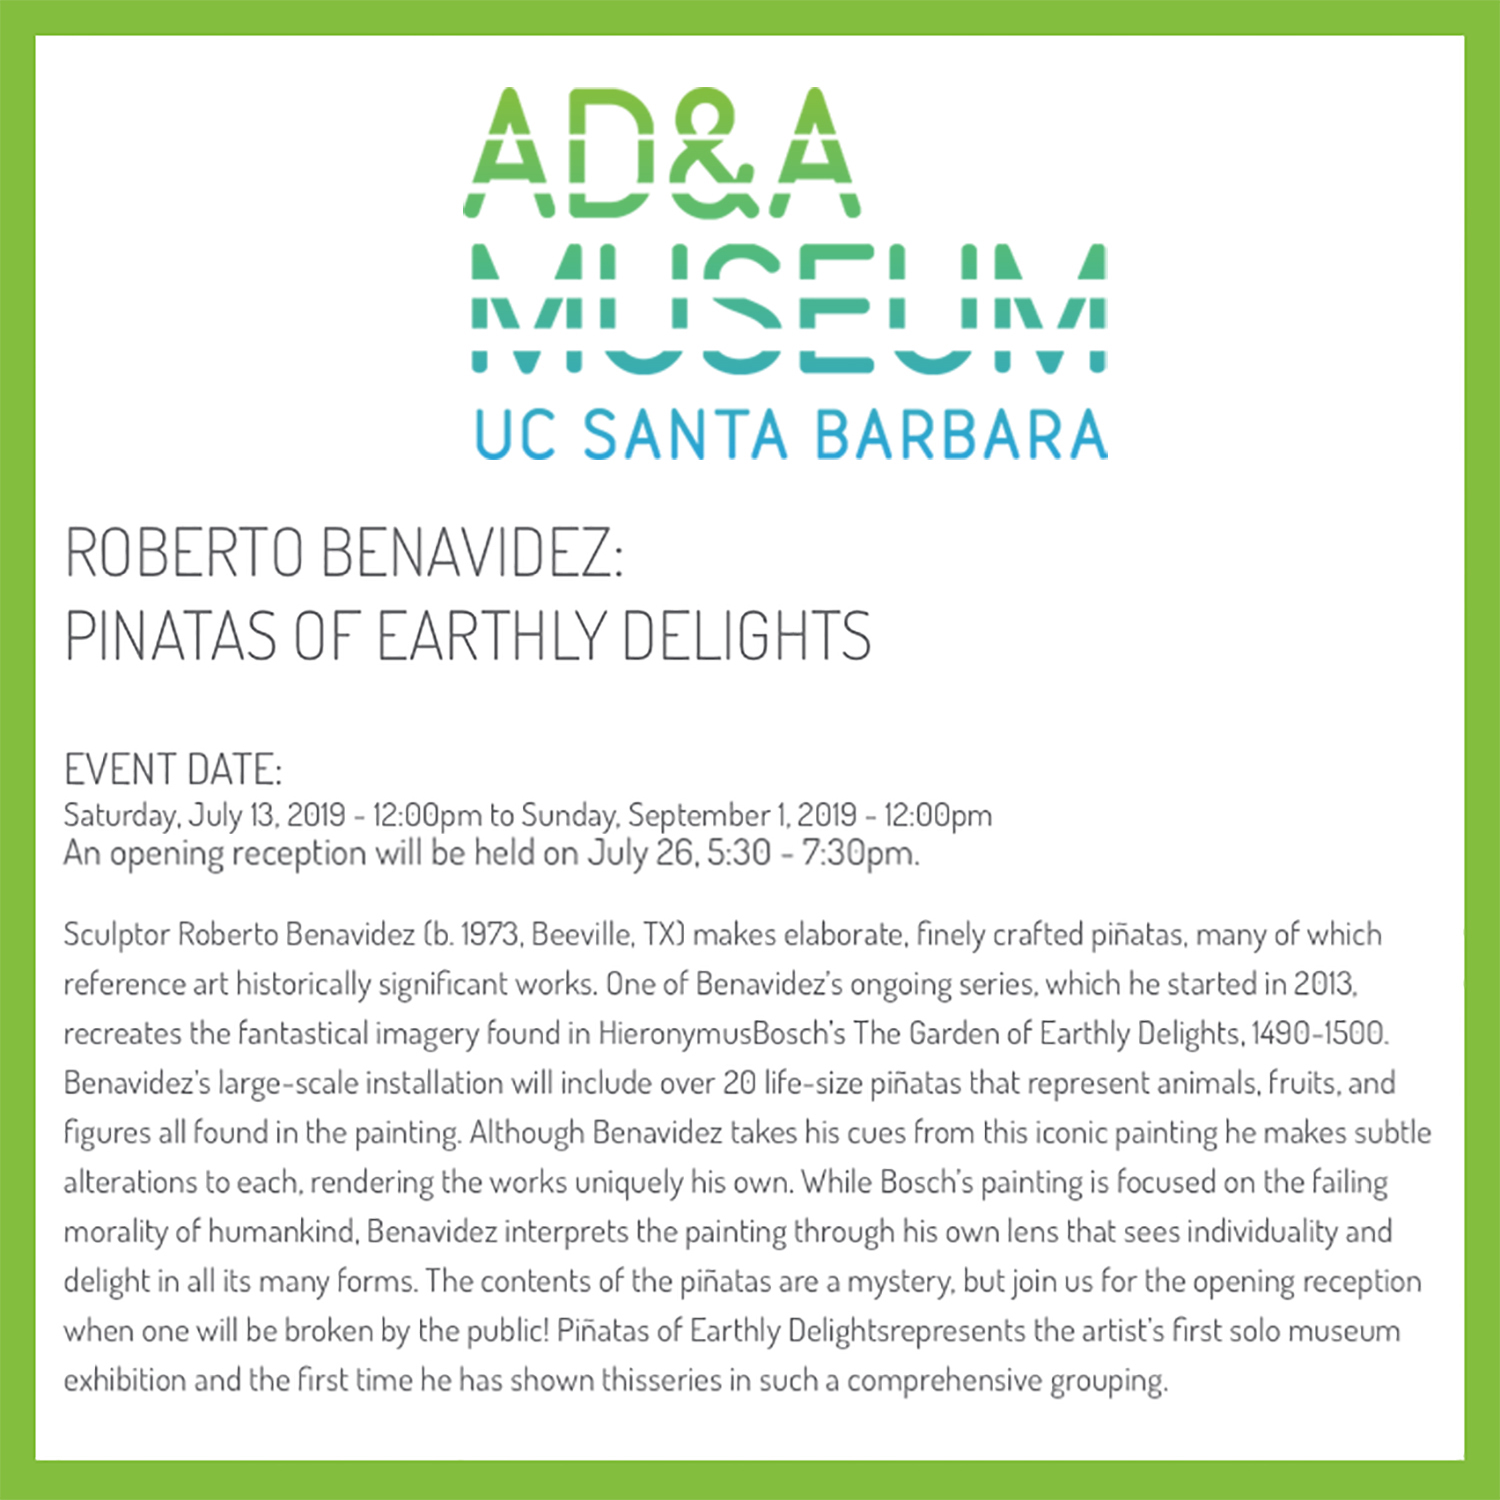 AD&A Museum - Piñatas of Earthly Delights.jpg